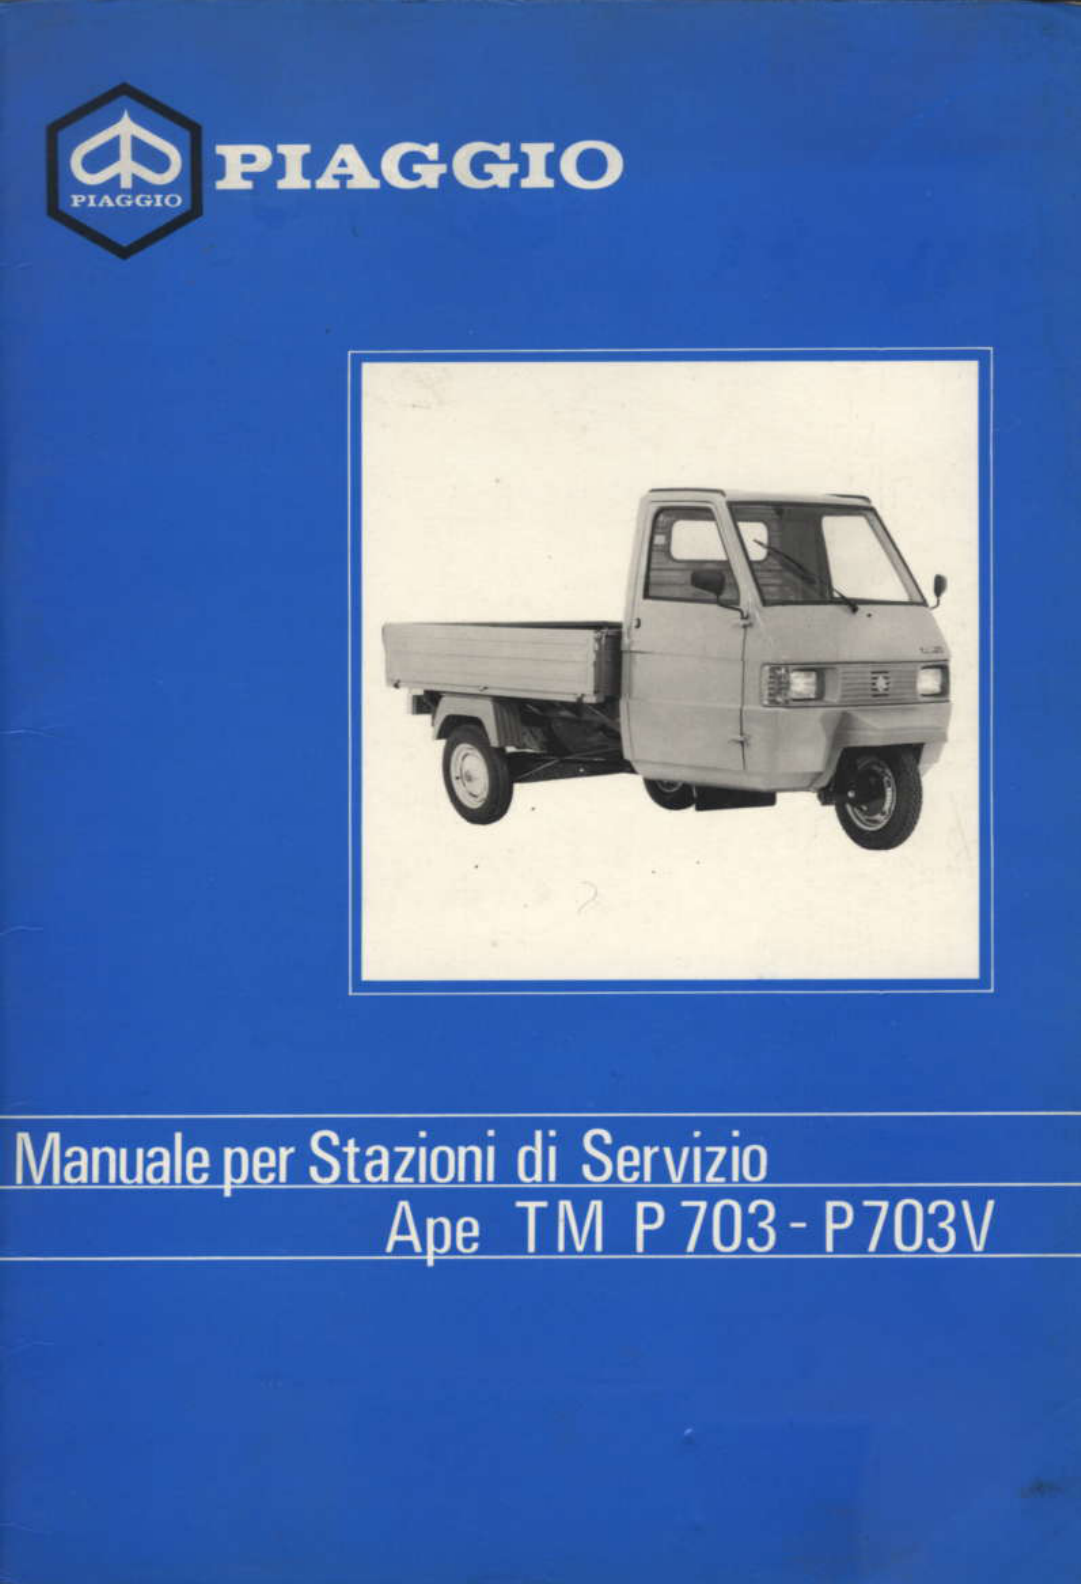 See our other Piaggio APE Manuals: